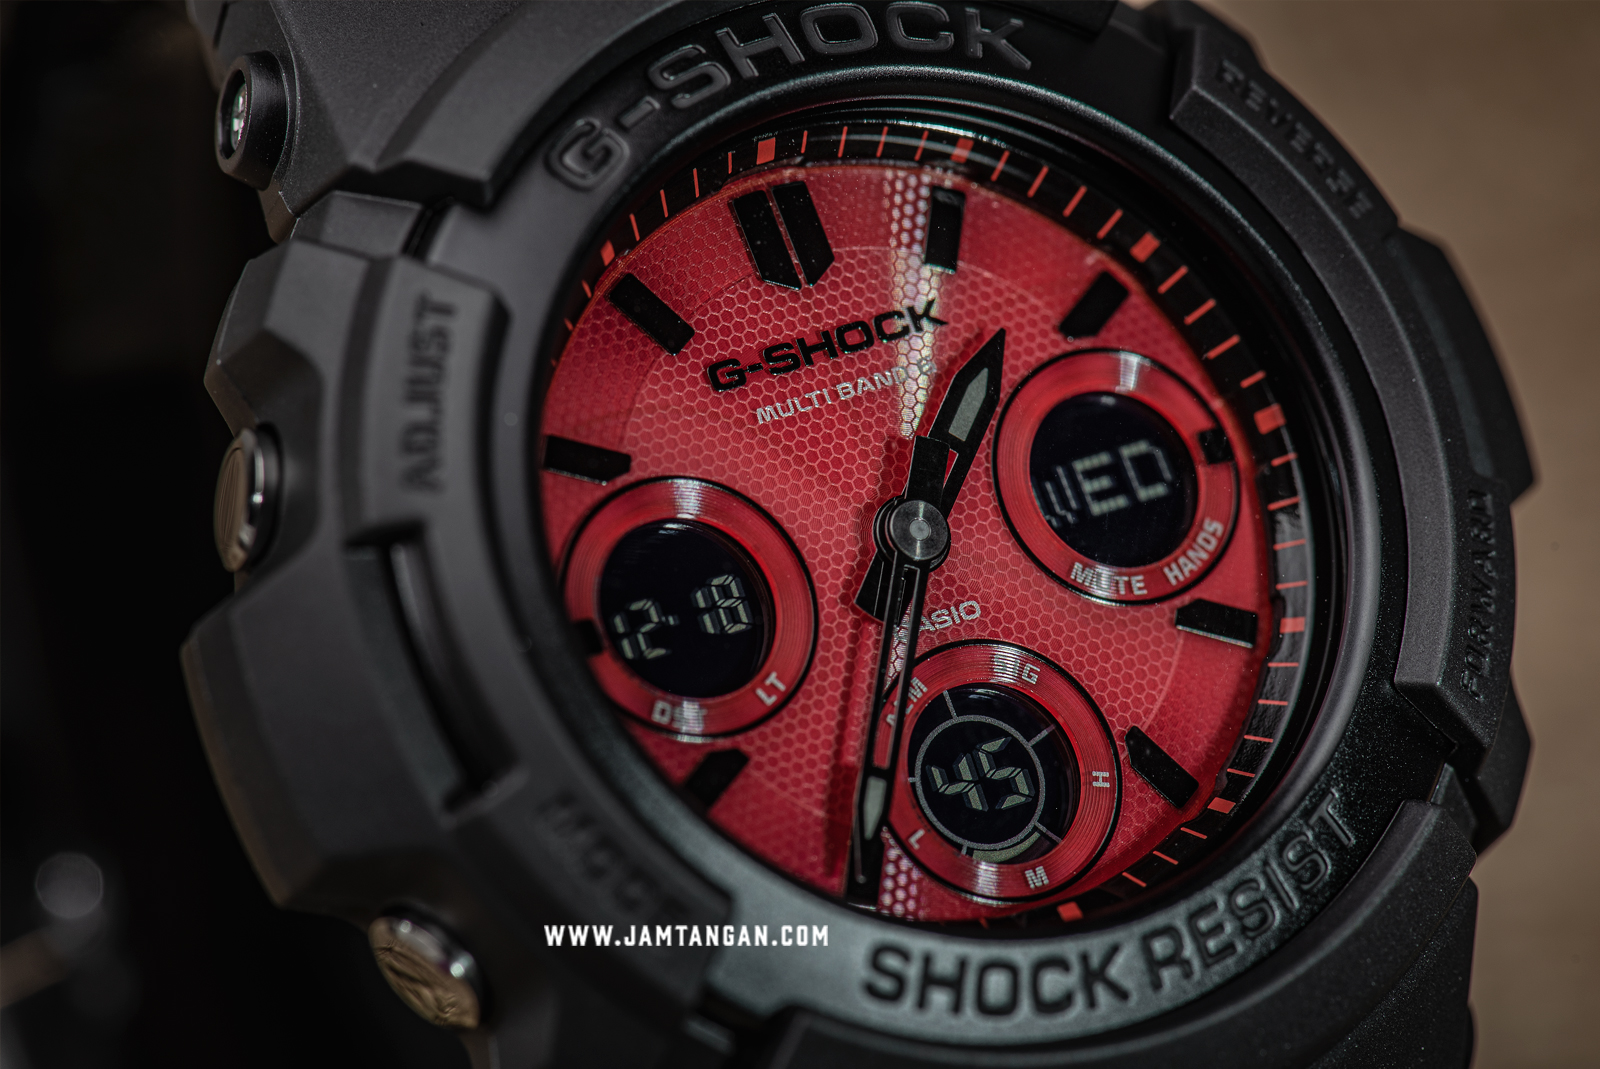 Casio G-Shock AWG-M100SAR-1AJF Multiband 6 Tough Solar Special Colour Red Dial Black Resin Machtwatch